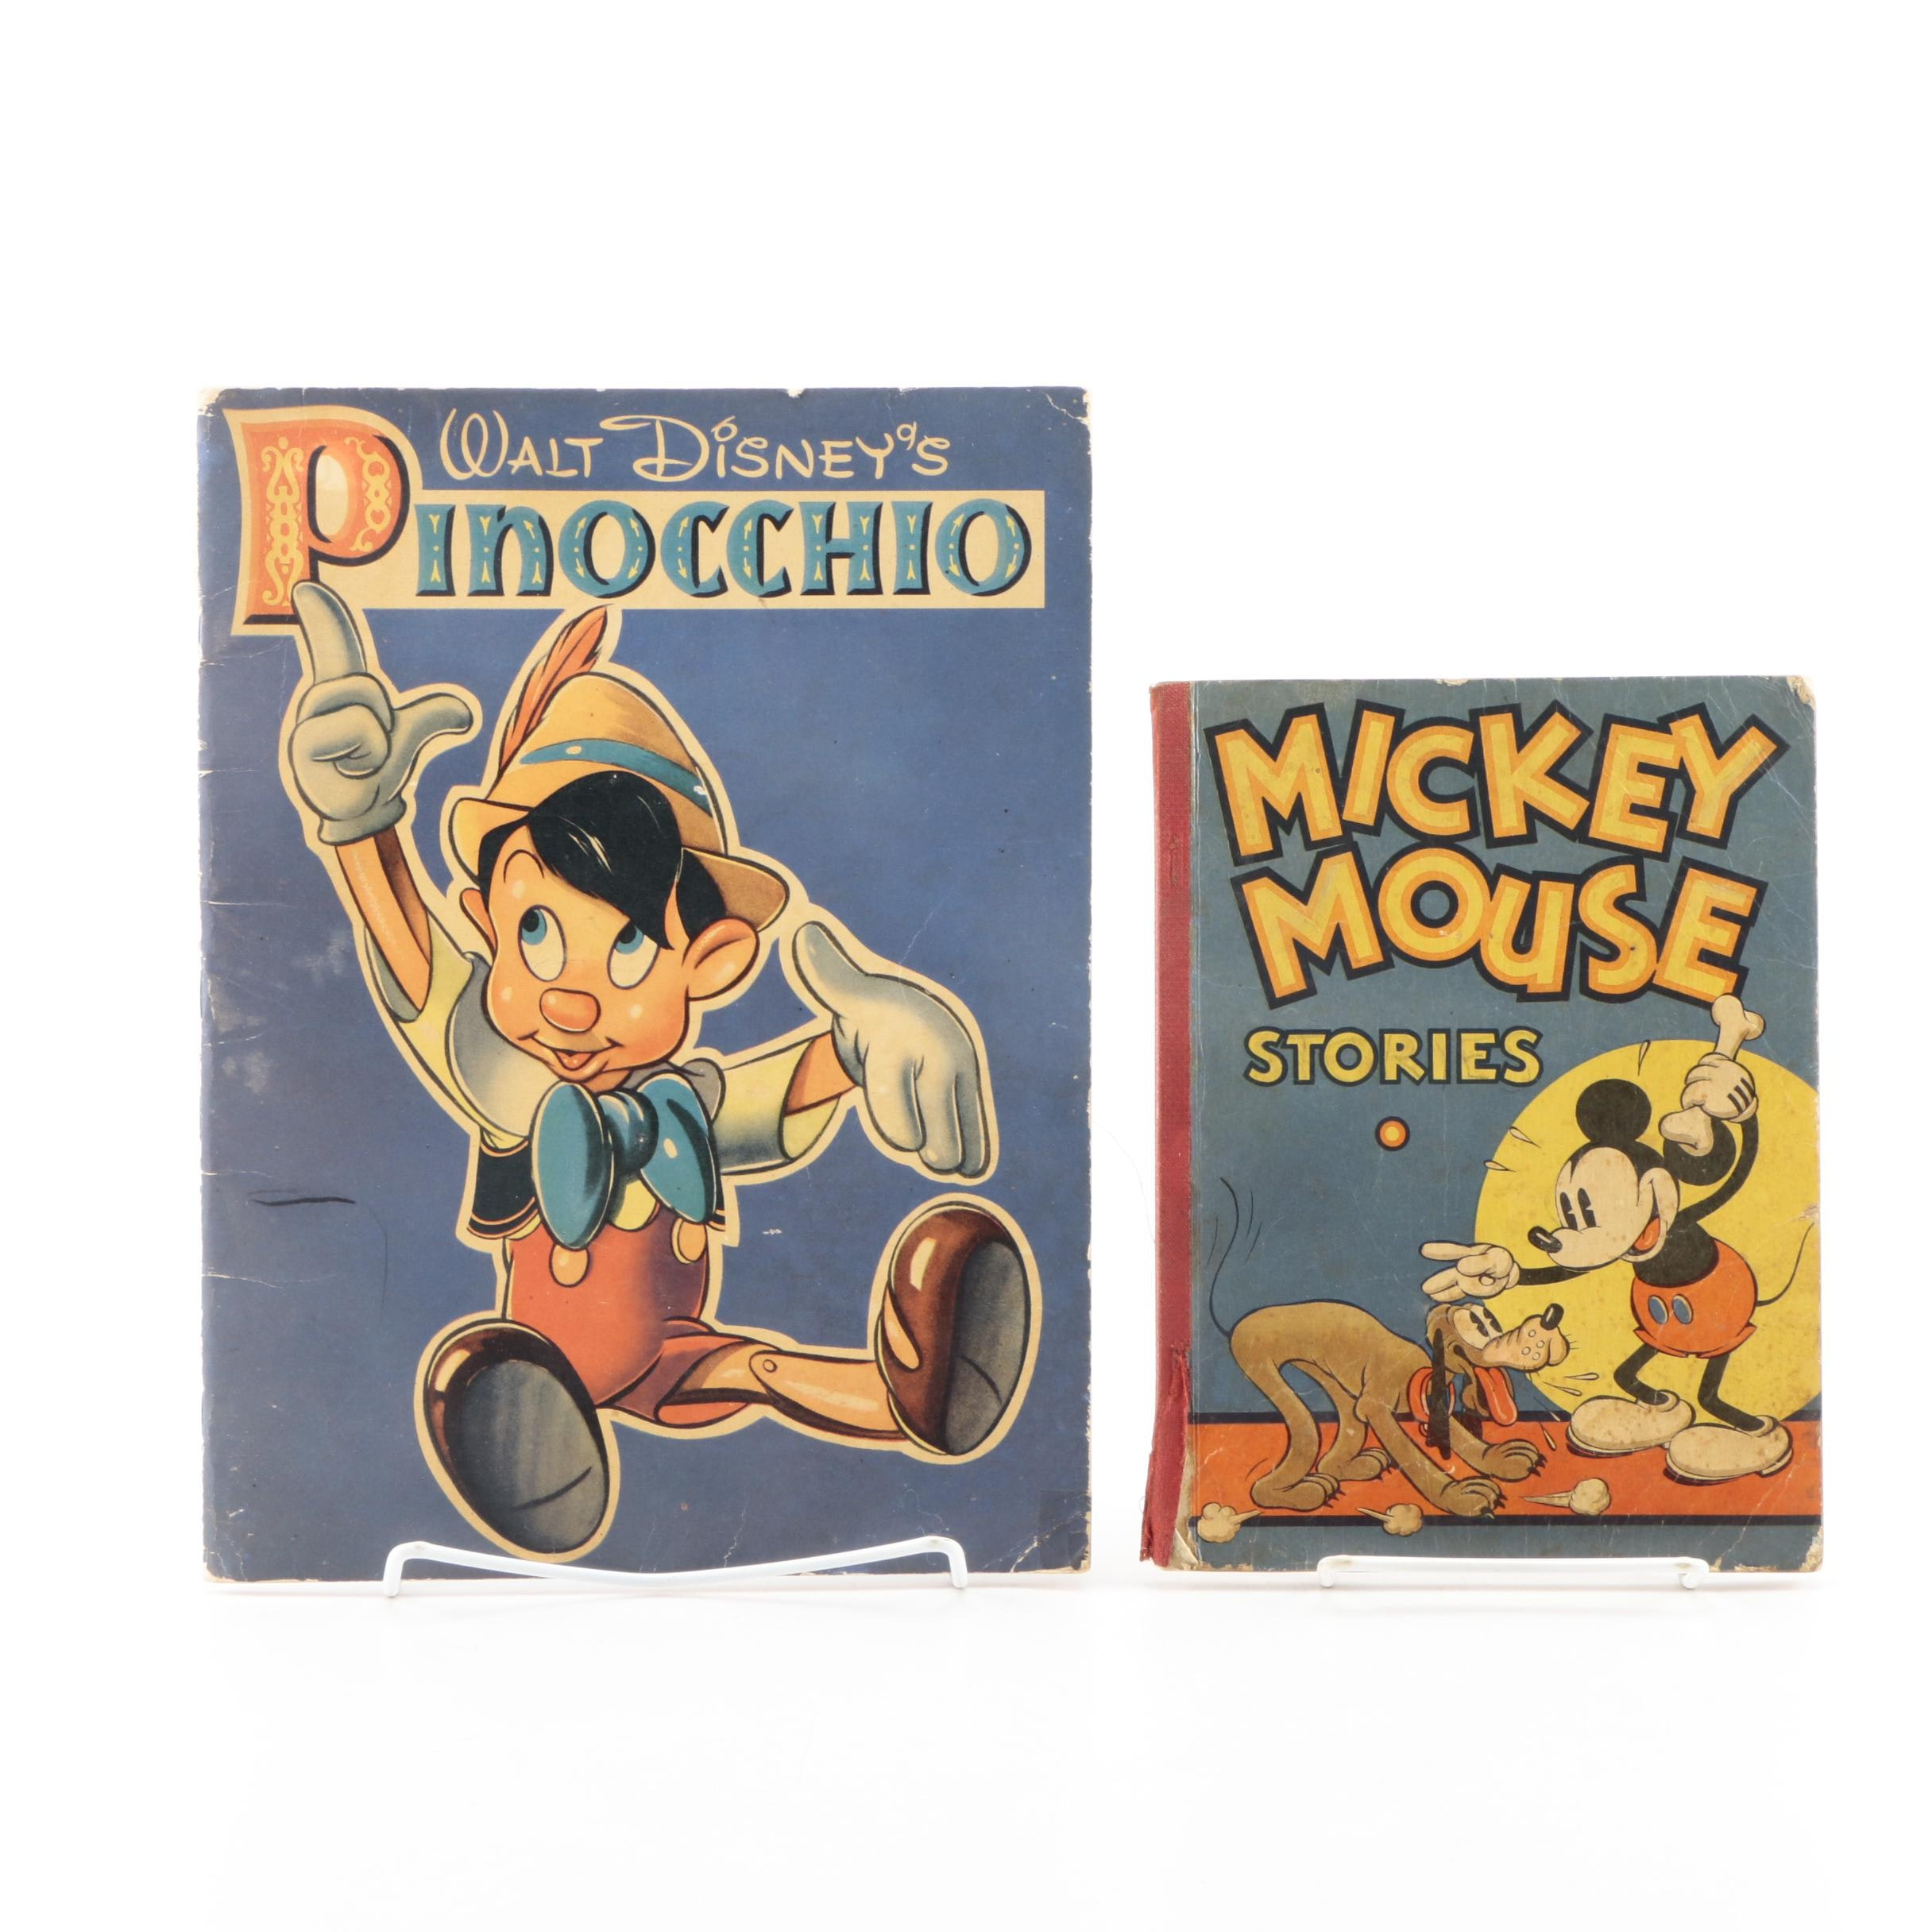 1930s Disney Coloring and Story Books